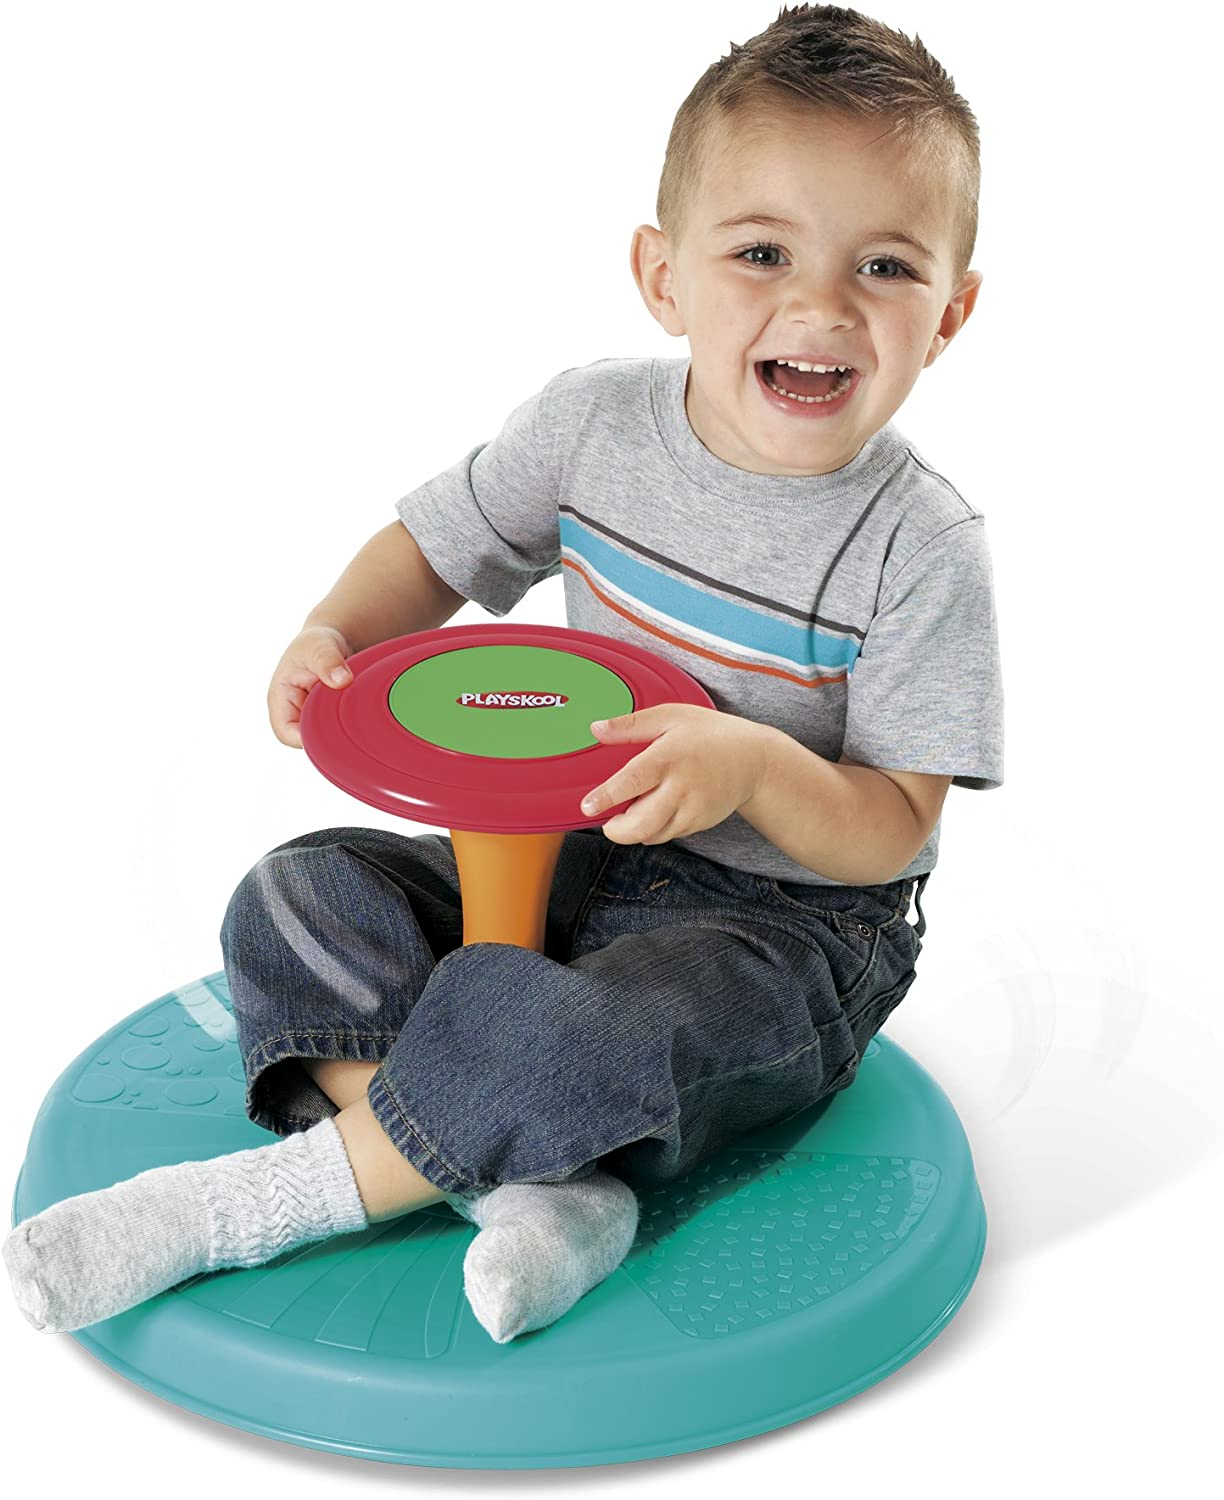 Playskool Sit ?n Spin Classic Spinning Activity Toy for Toddlers Ages Over 18...